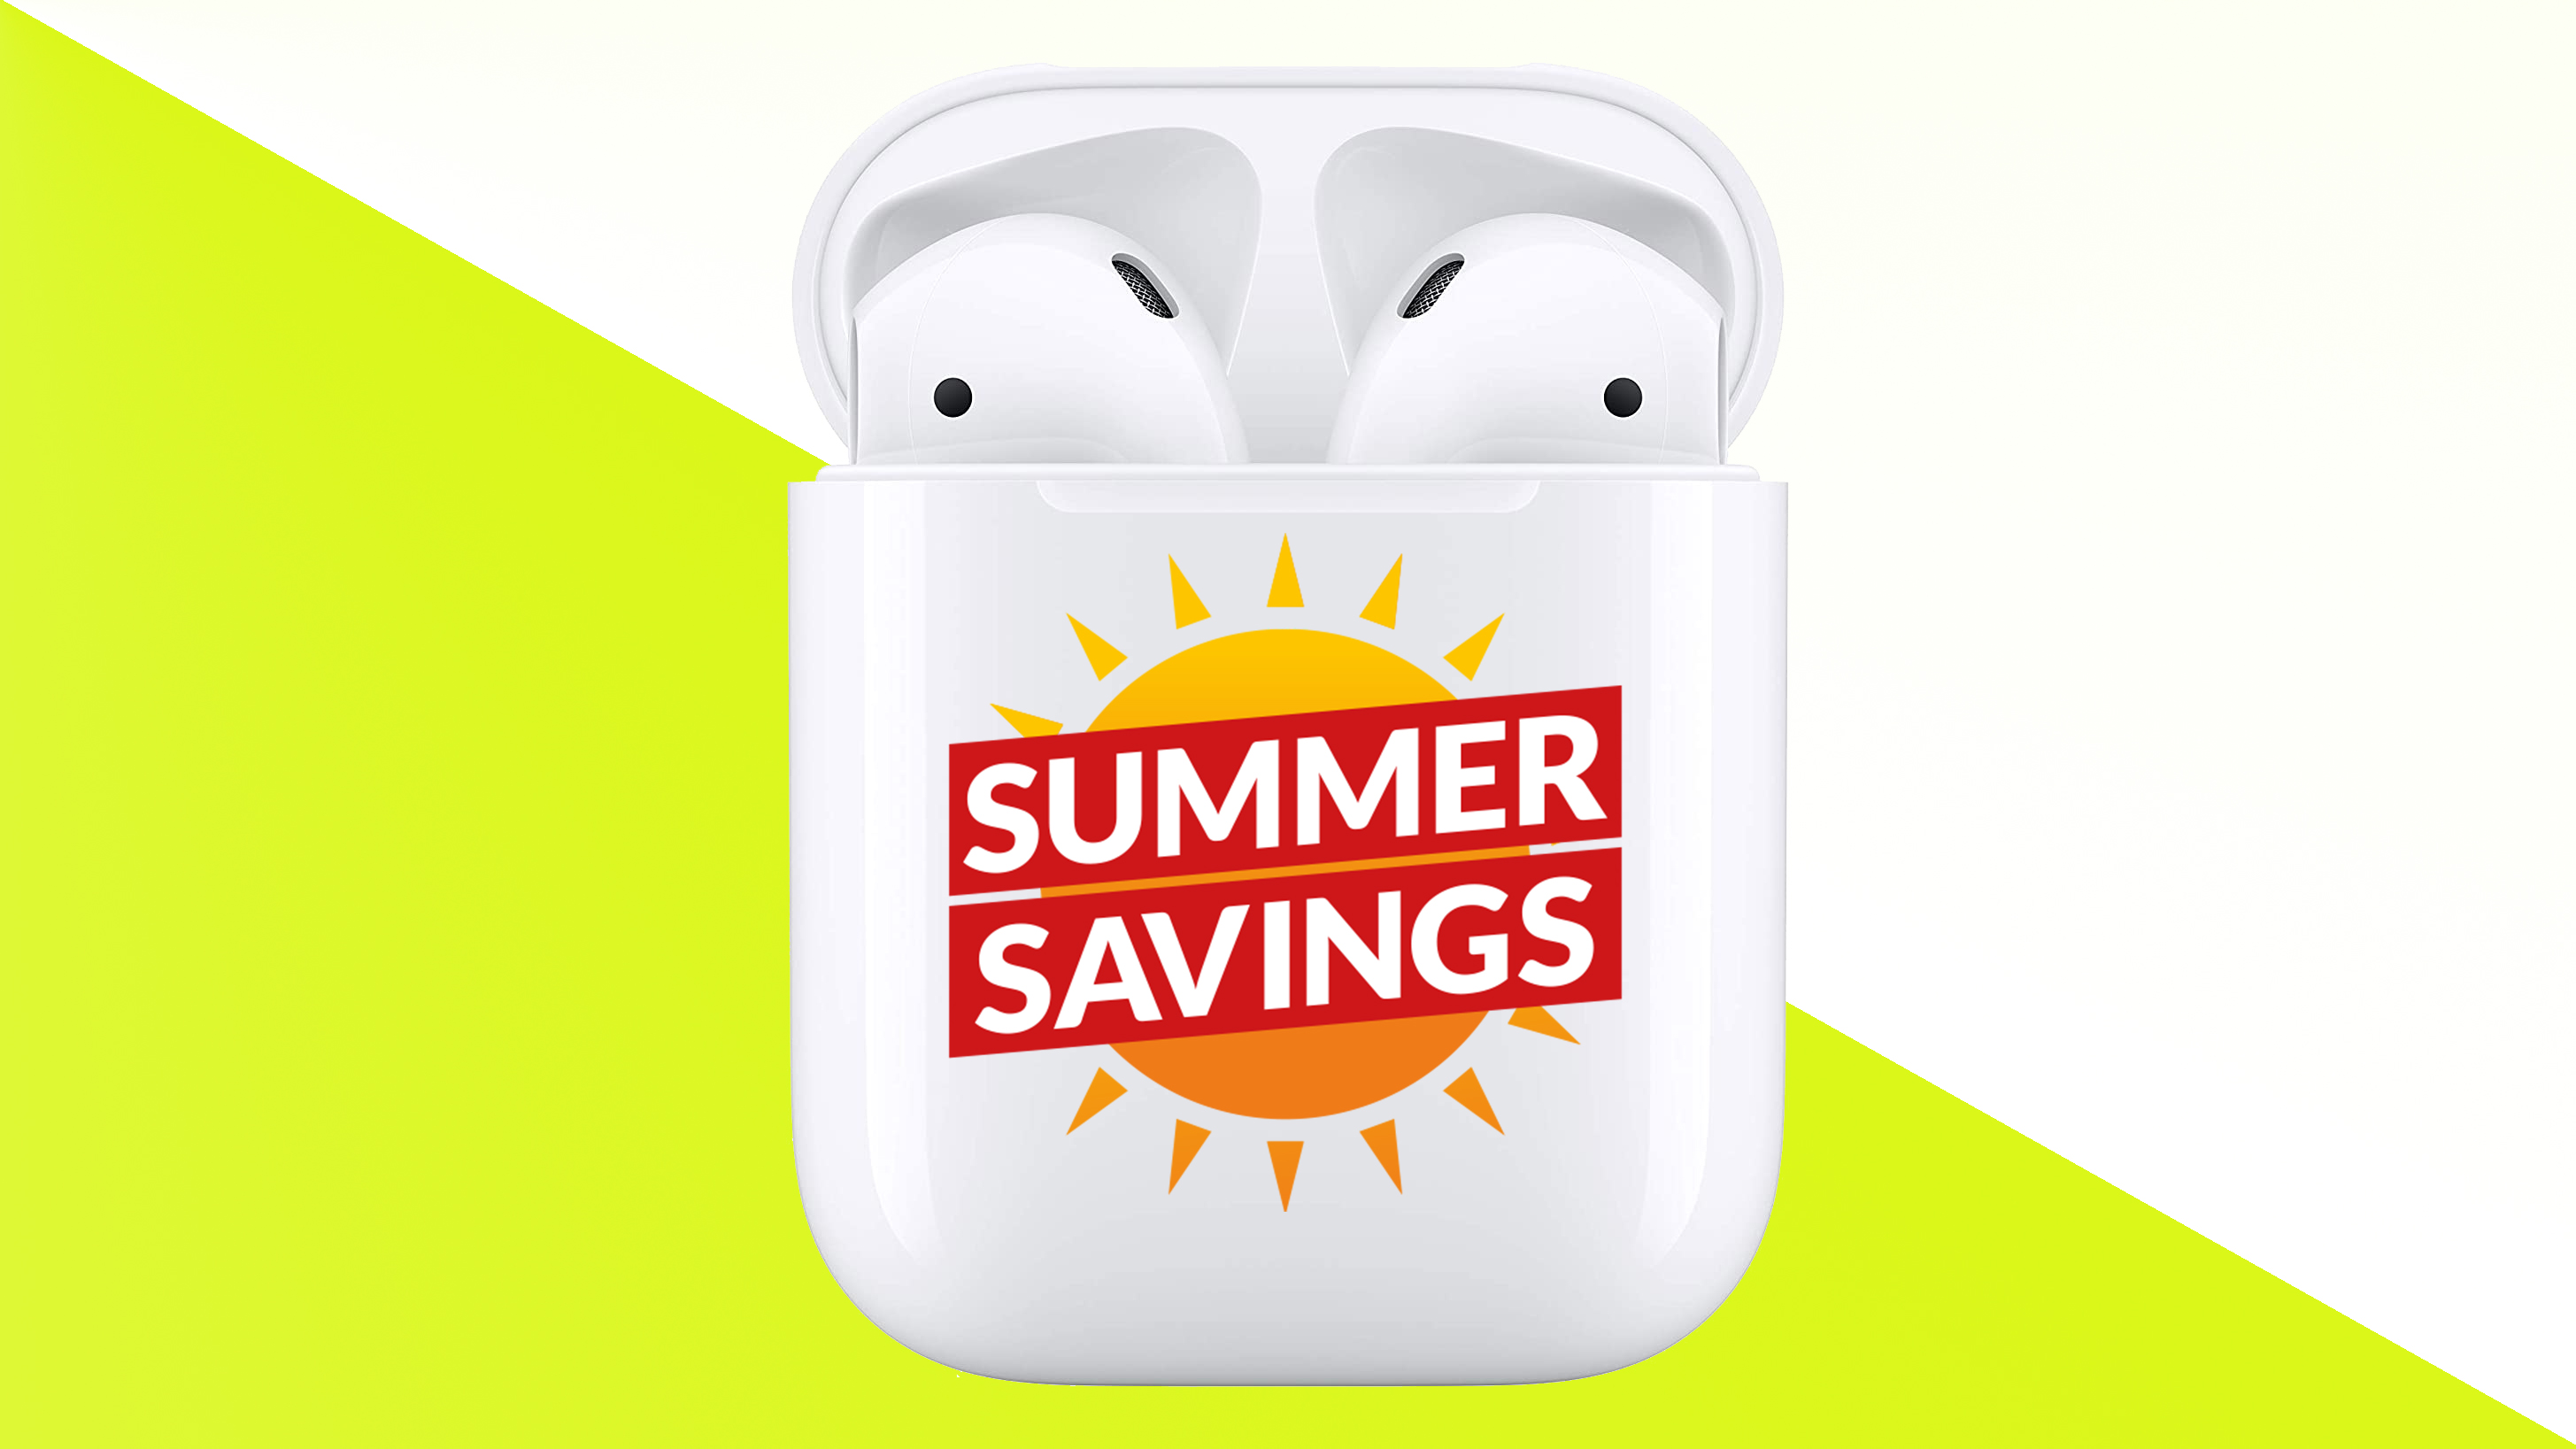 Apple Airpods With Wireless Charging Case Now 40 Off In Amazon Summer Sale T3